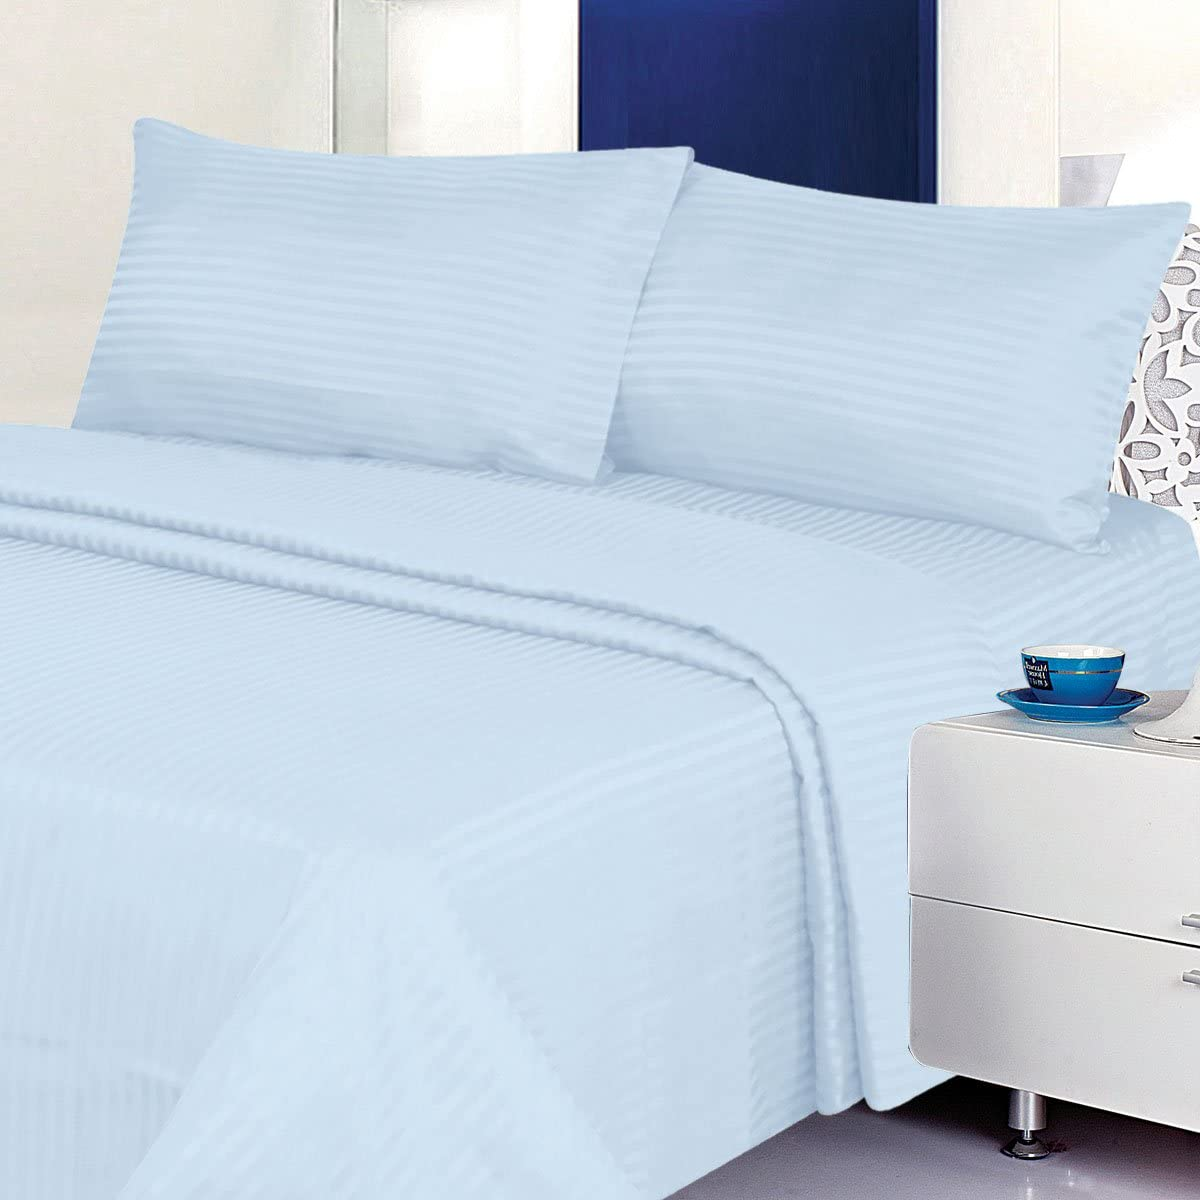 Deluxe Bed Sheet Set - 1800 2021 new Max 65% OFF Piece Pocket Cool Series 4 Deep